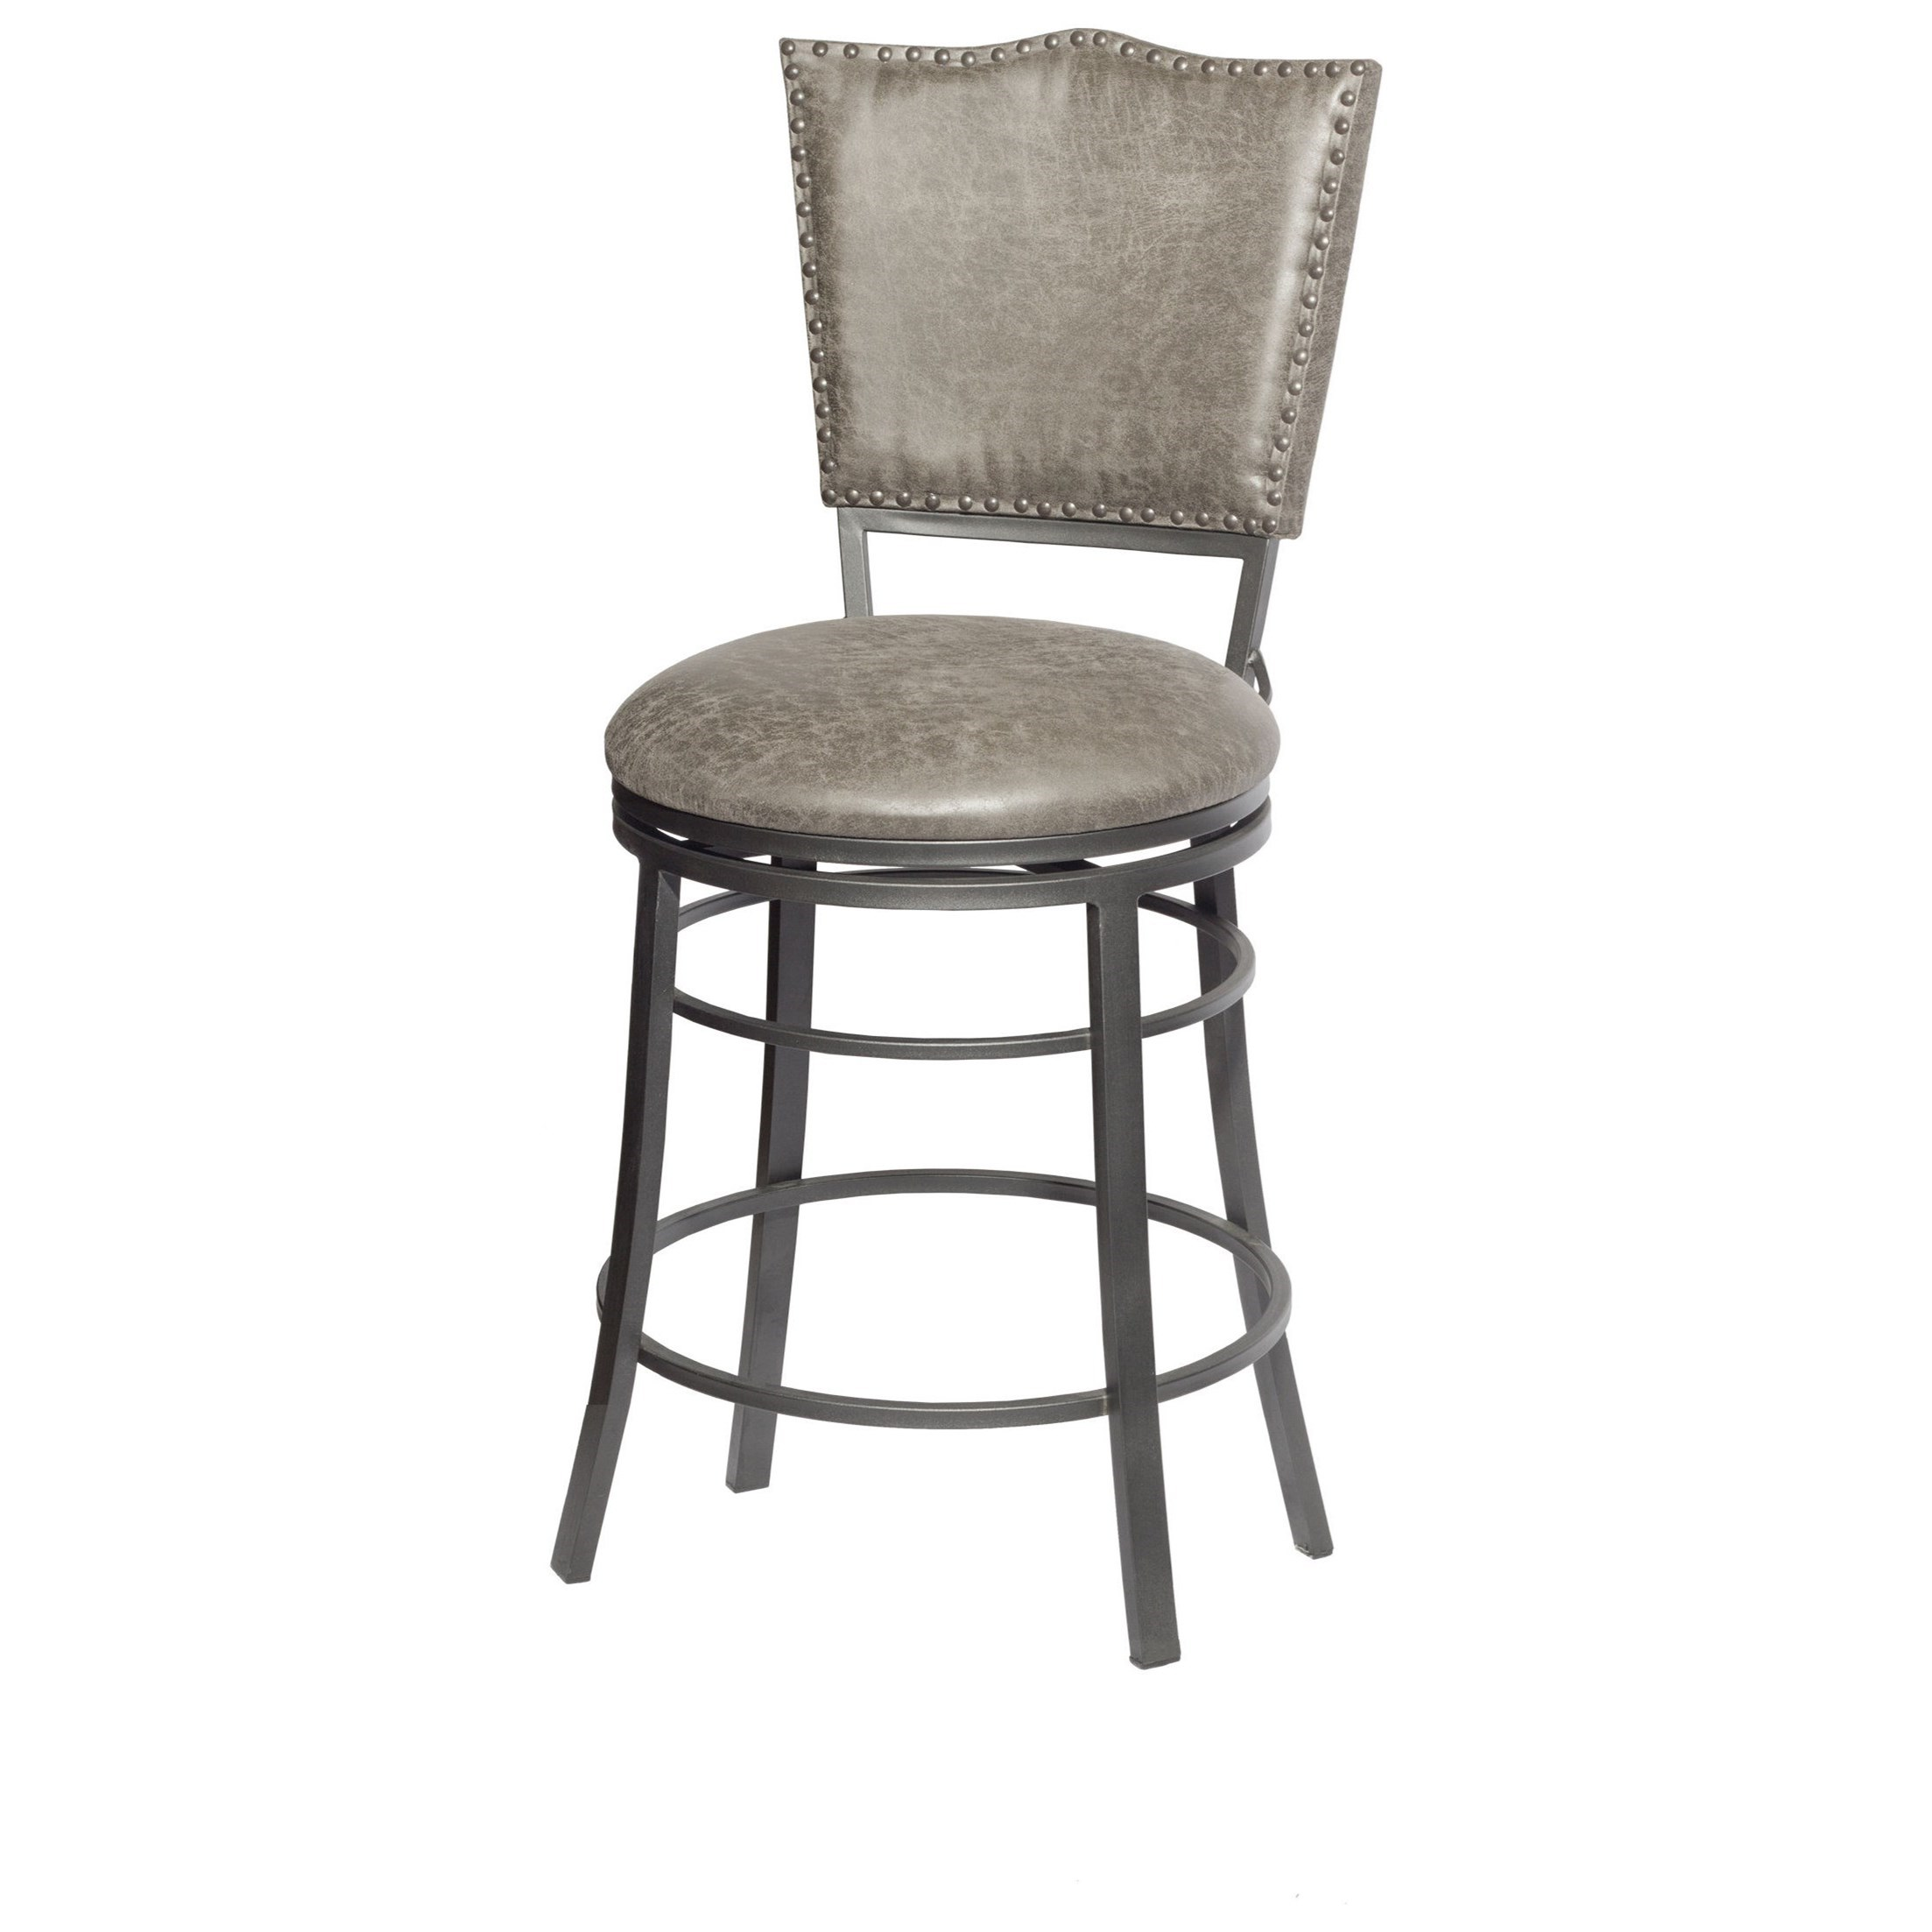 Sari Swivel Counter Stool  by Steve Silver at Walker's Furniture